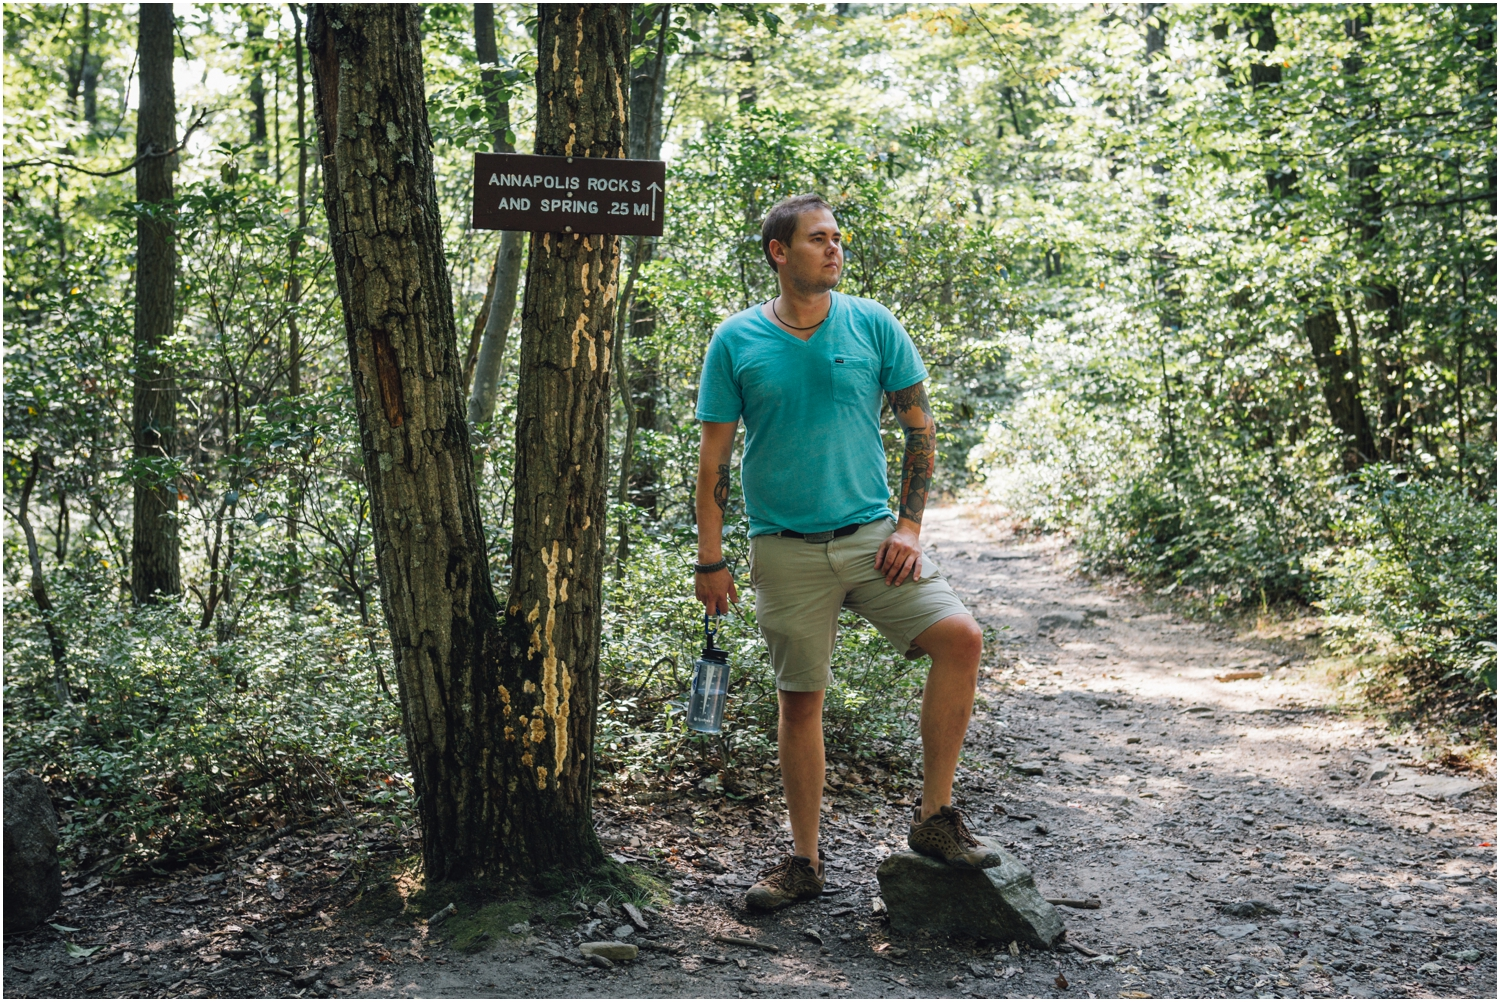 katy-sergent-photography-proposal-appalachian-trail-annapolis-rocks-adventurous-wedding-couples-intimate-elopement-hiking-backpacking-camping-photographer-johnson-city-tn-northeast-tennessee_0010.jpg